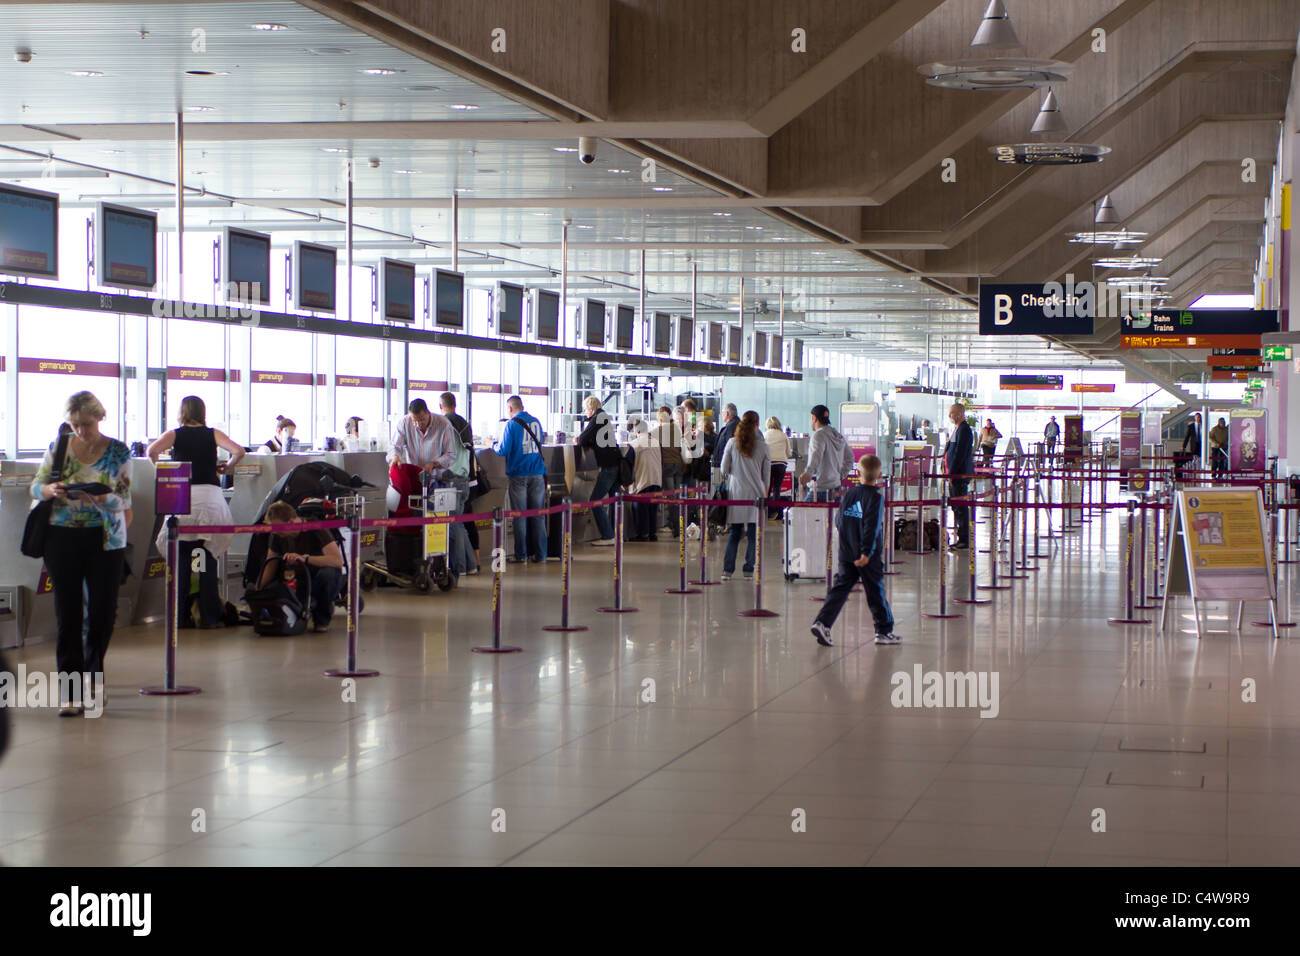 Check In Area In Bonn Cologne Airport Germanwings Stock Photo